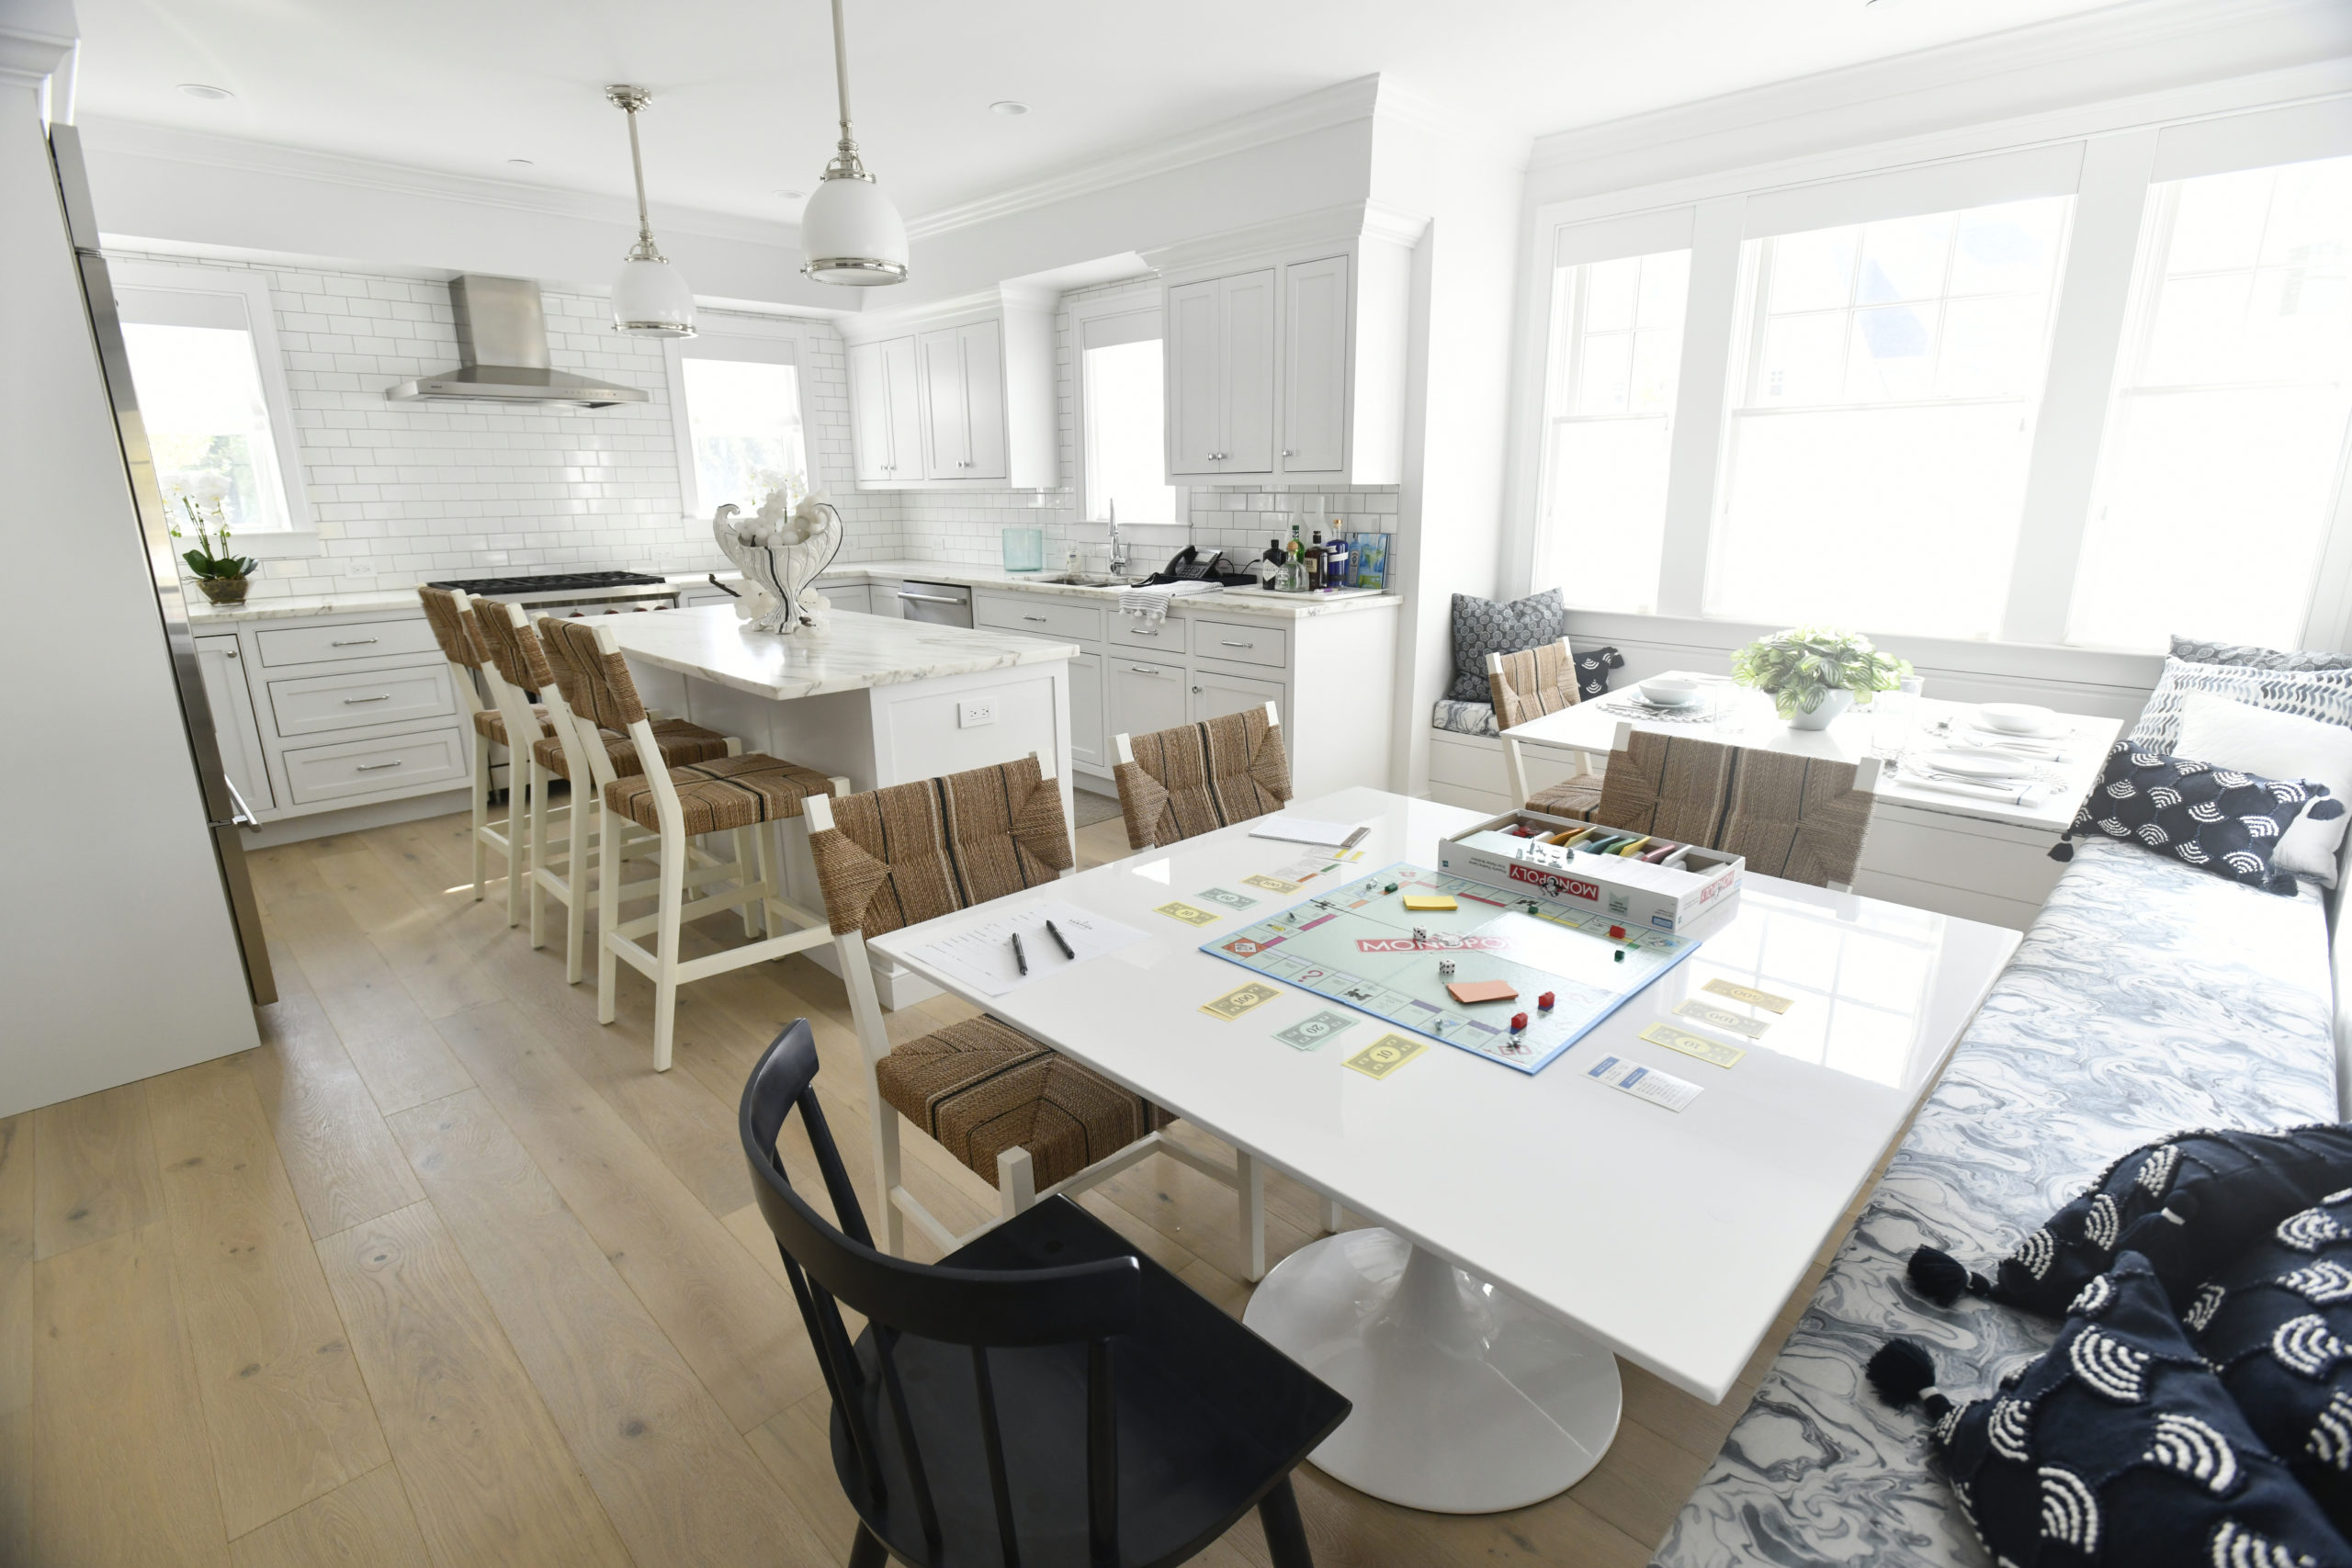 The kitchen and dining area of the three-bedroom unit at Hampton Boathouses. DANA SHAW